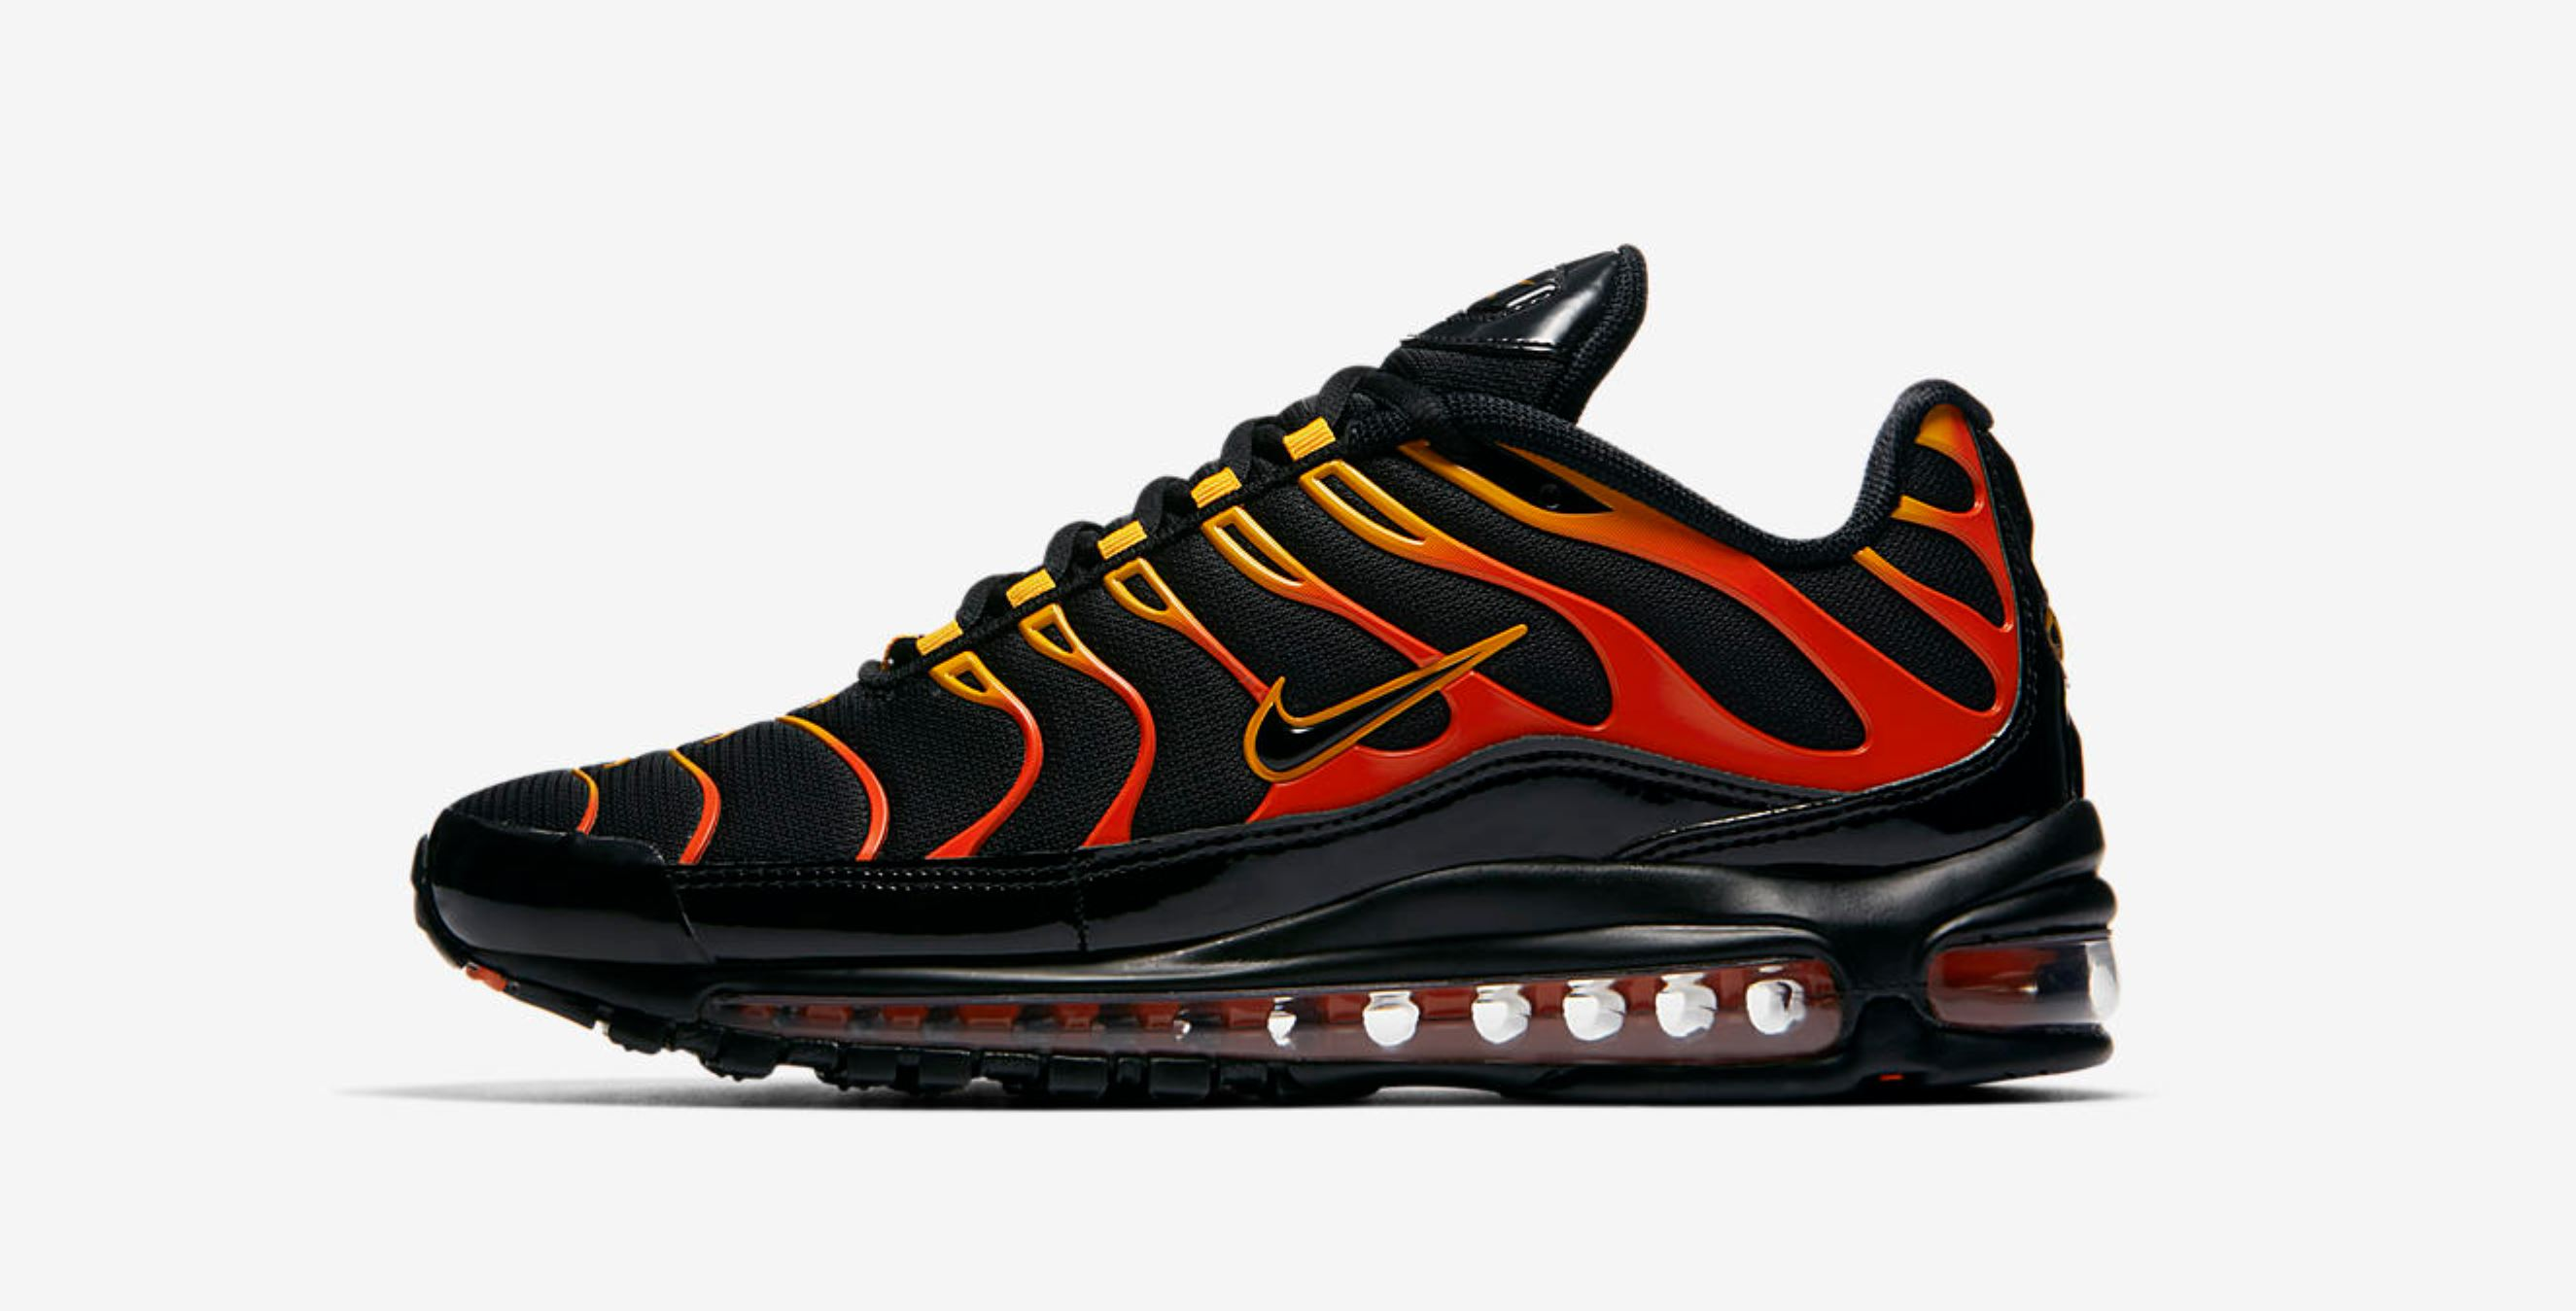 Nike Air Max 97 2013 'Cardinal Red' WearTesters